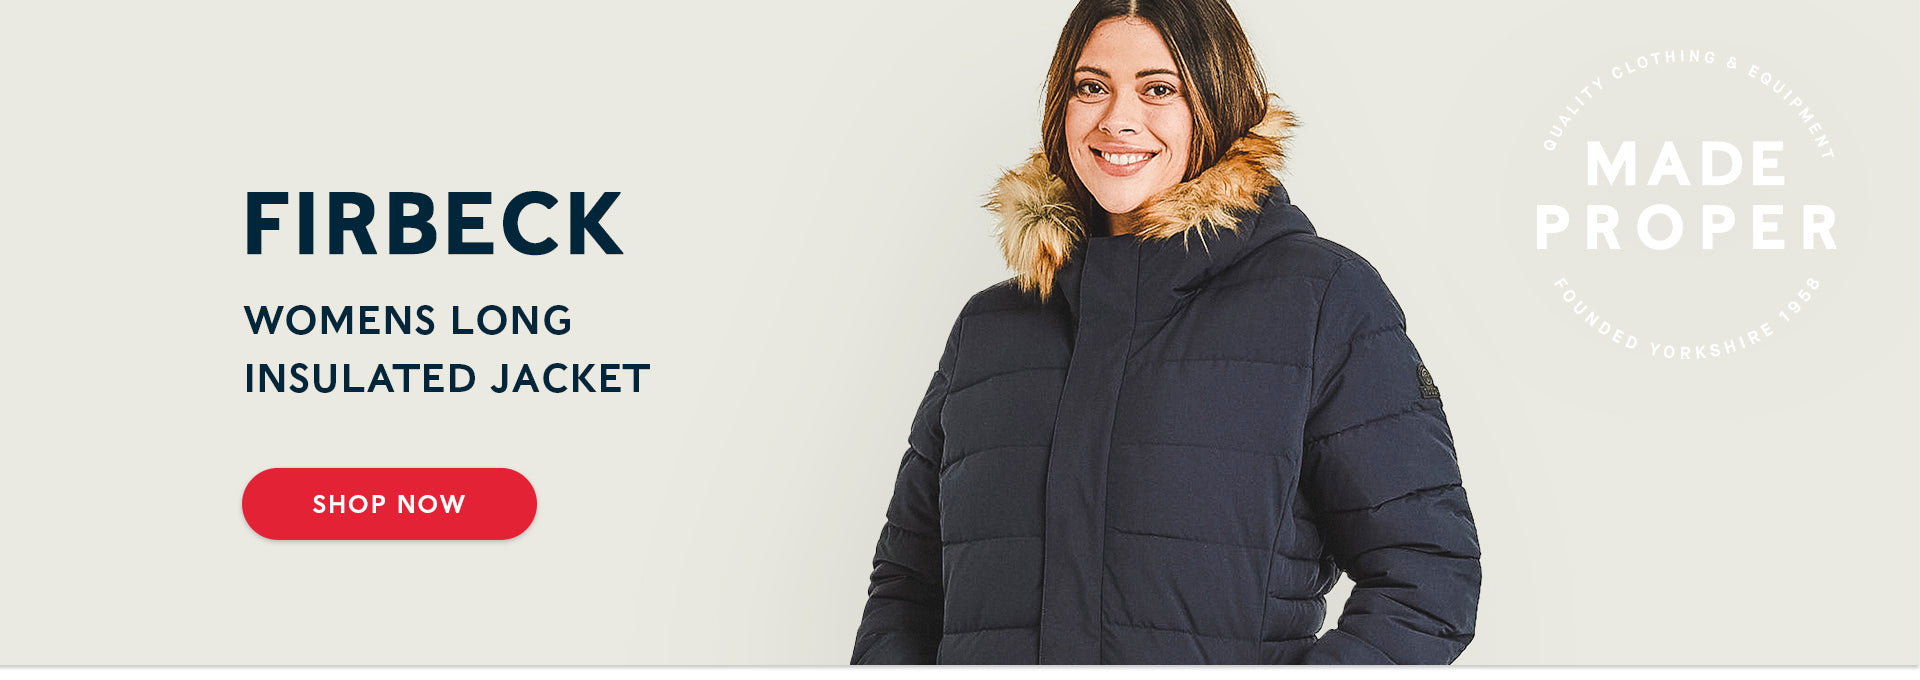 Firbeck Womens Long Insulated Jacket | Shop now